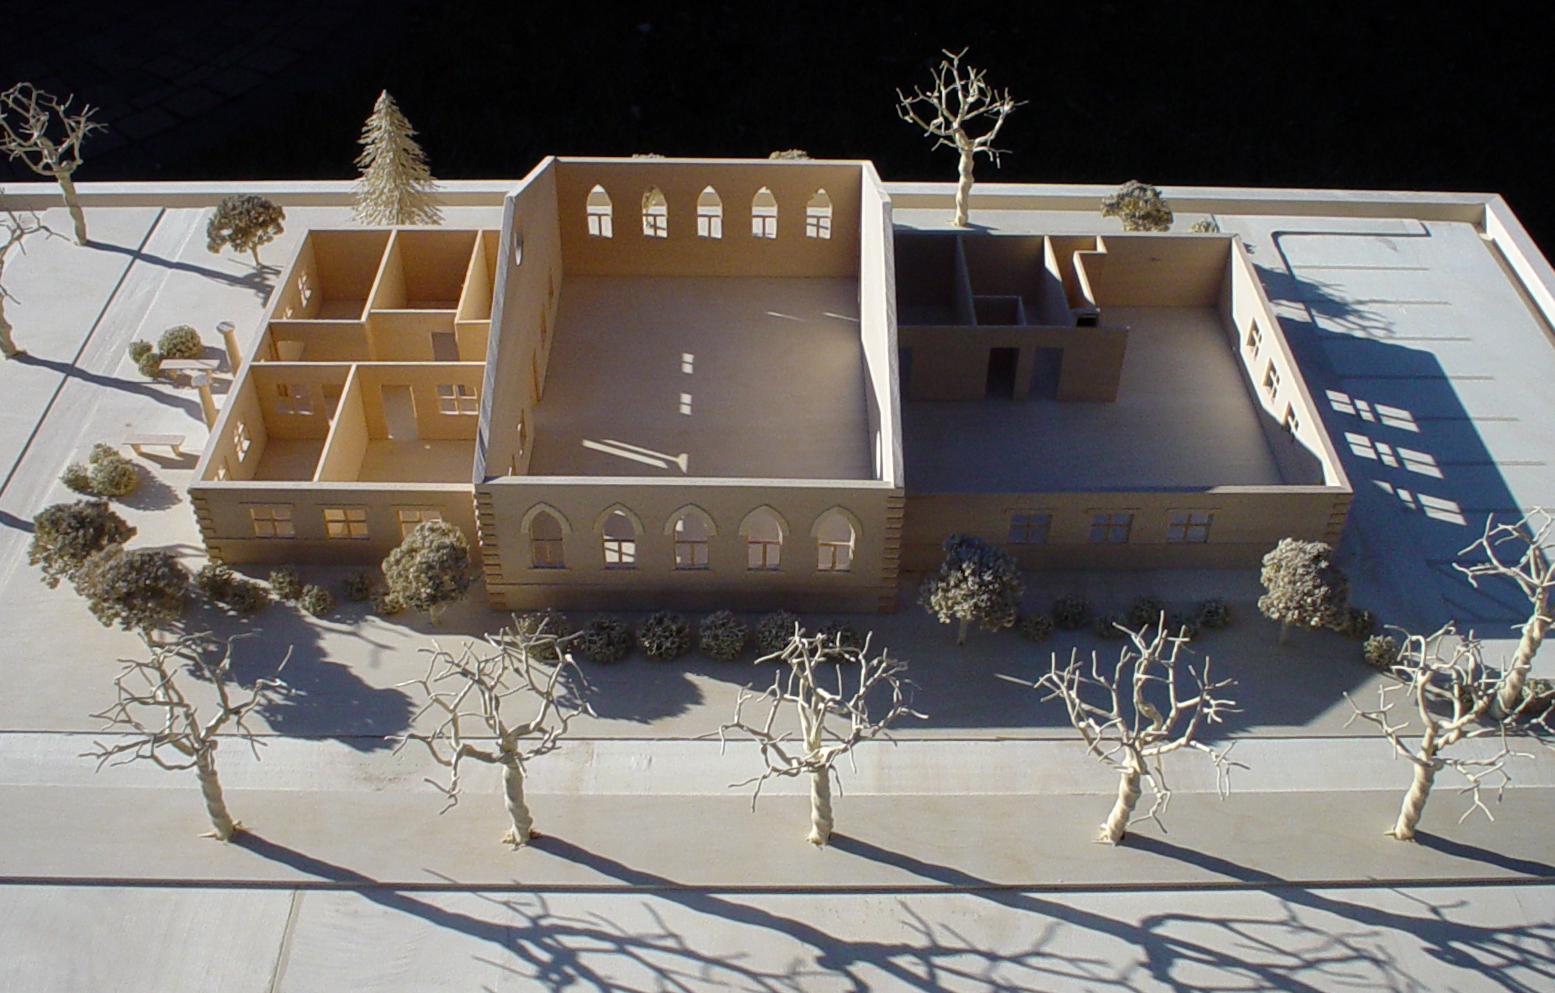 custom new construction, institutional design, church building, small congregation, 3D model, architectural scale model